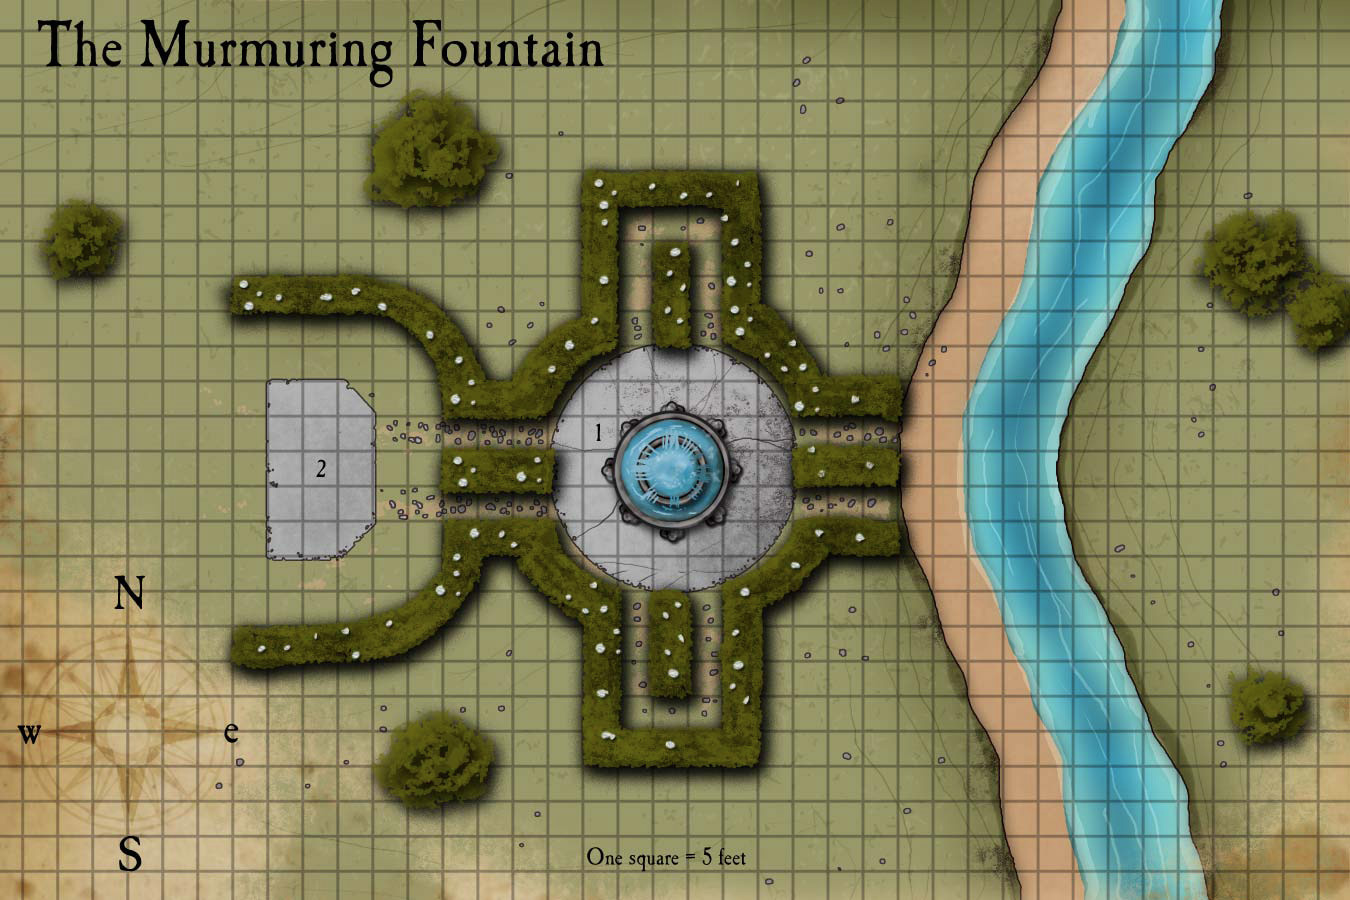 map-the-murmuring-fountain.jpg